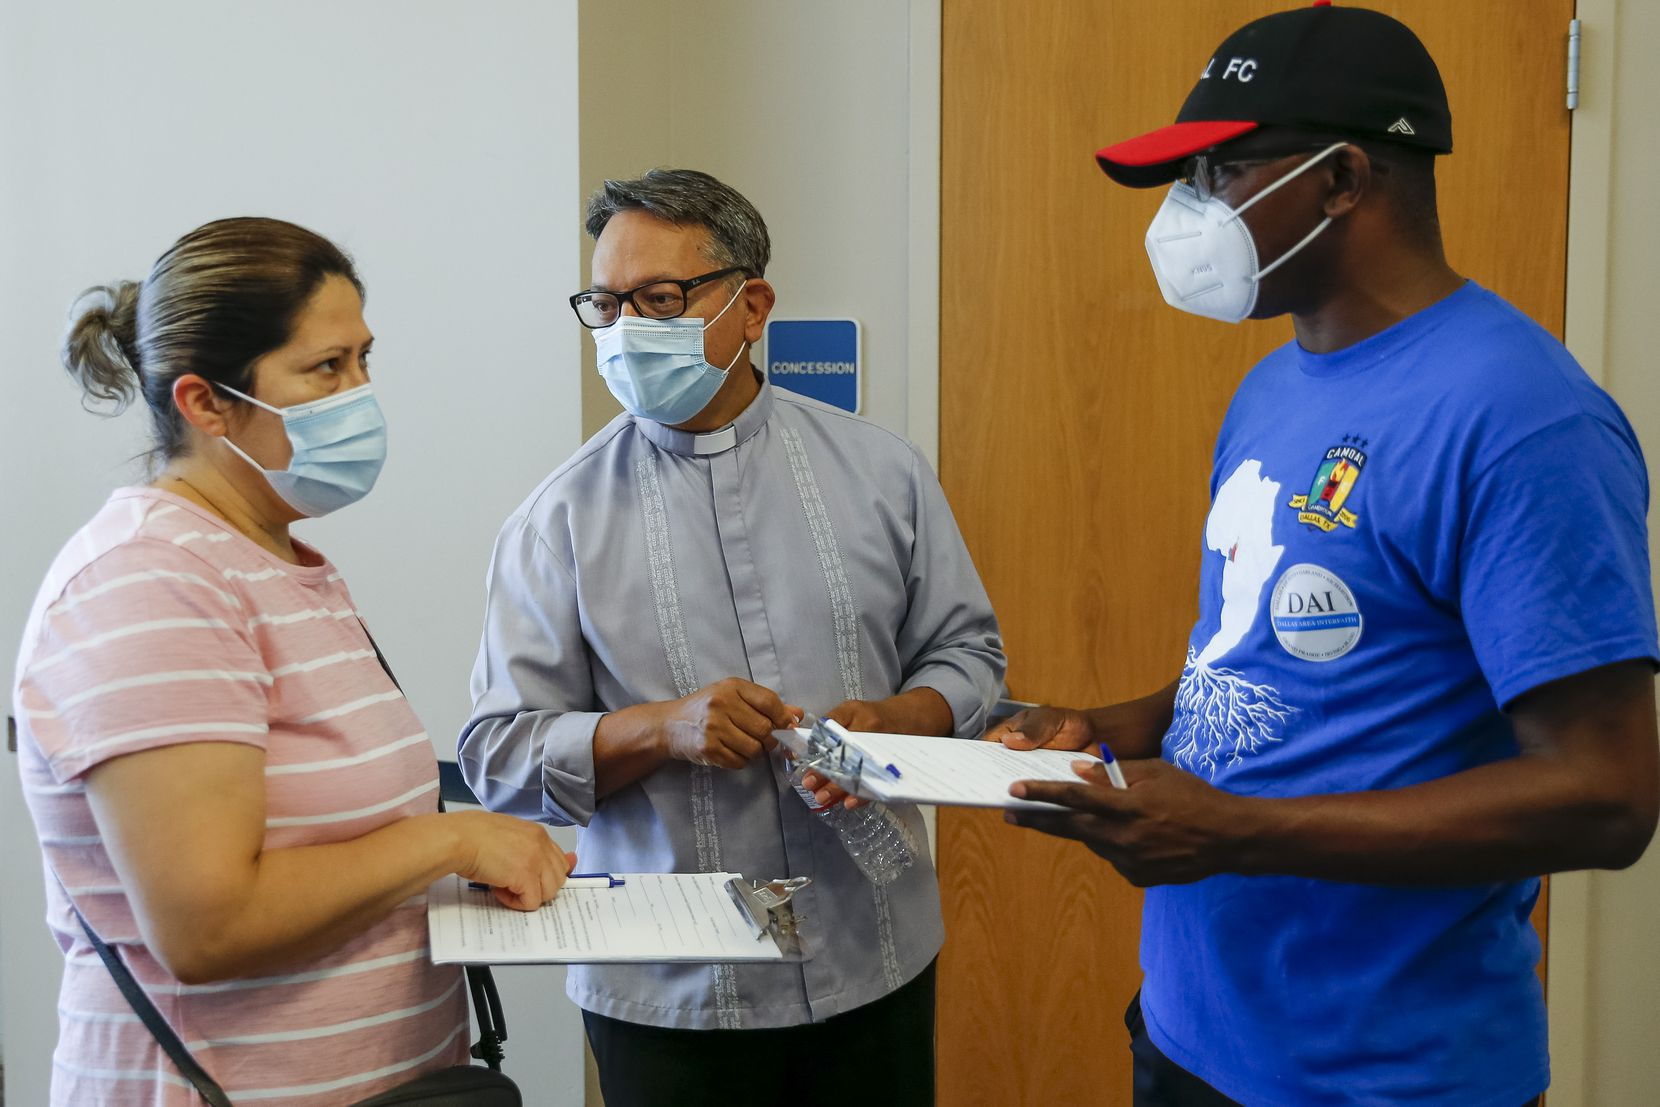 Maria Cruz of Dallas (left) receives help with paperwork from the Rev. Salvador Guzman (center) and Francis Basebang, leader with Dallas Area Interfaith, during a COVID-19 vaccination clinic at St. Pius X Catholic Church on Saturday, June 19, 2021, in Dallas.